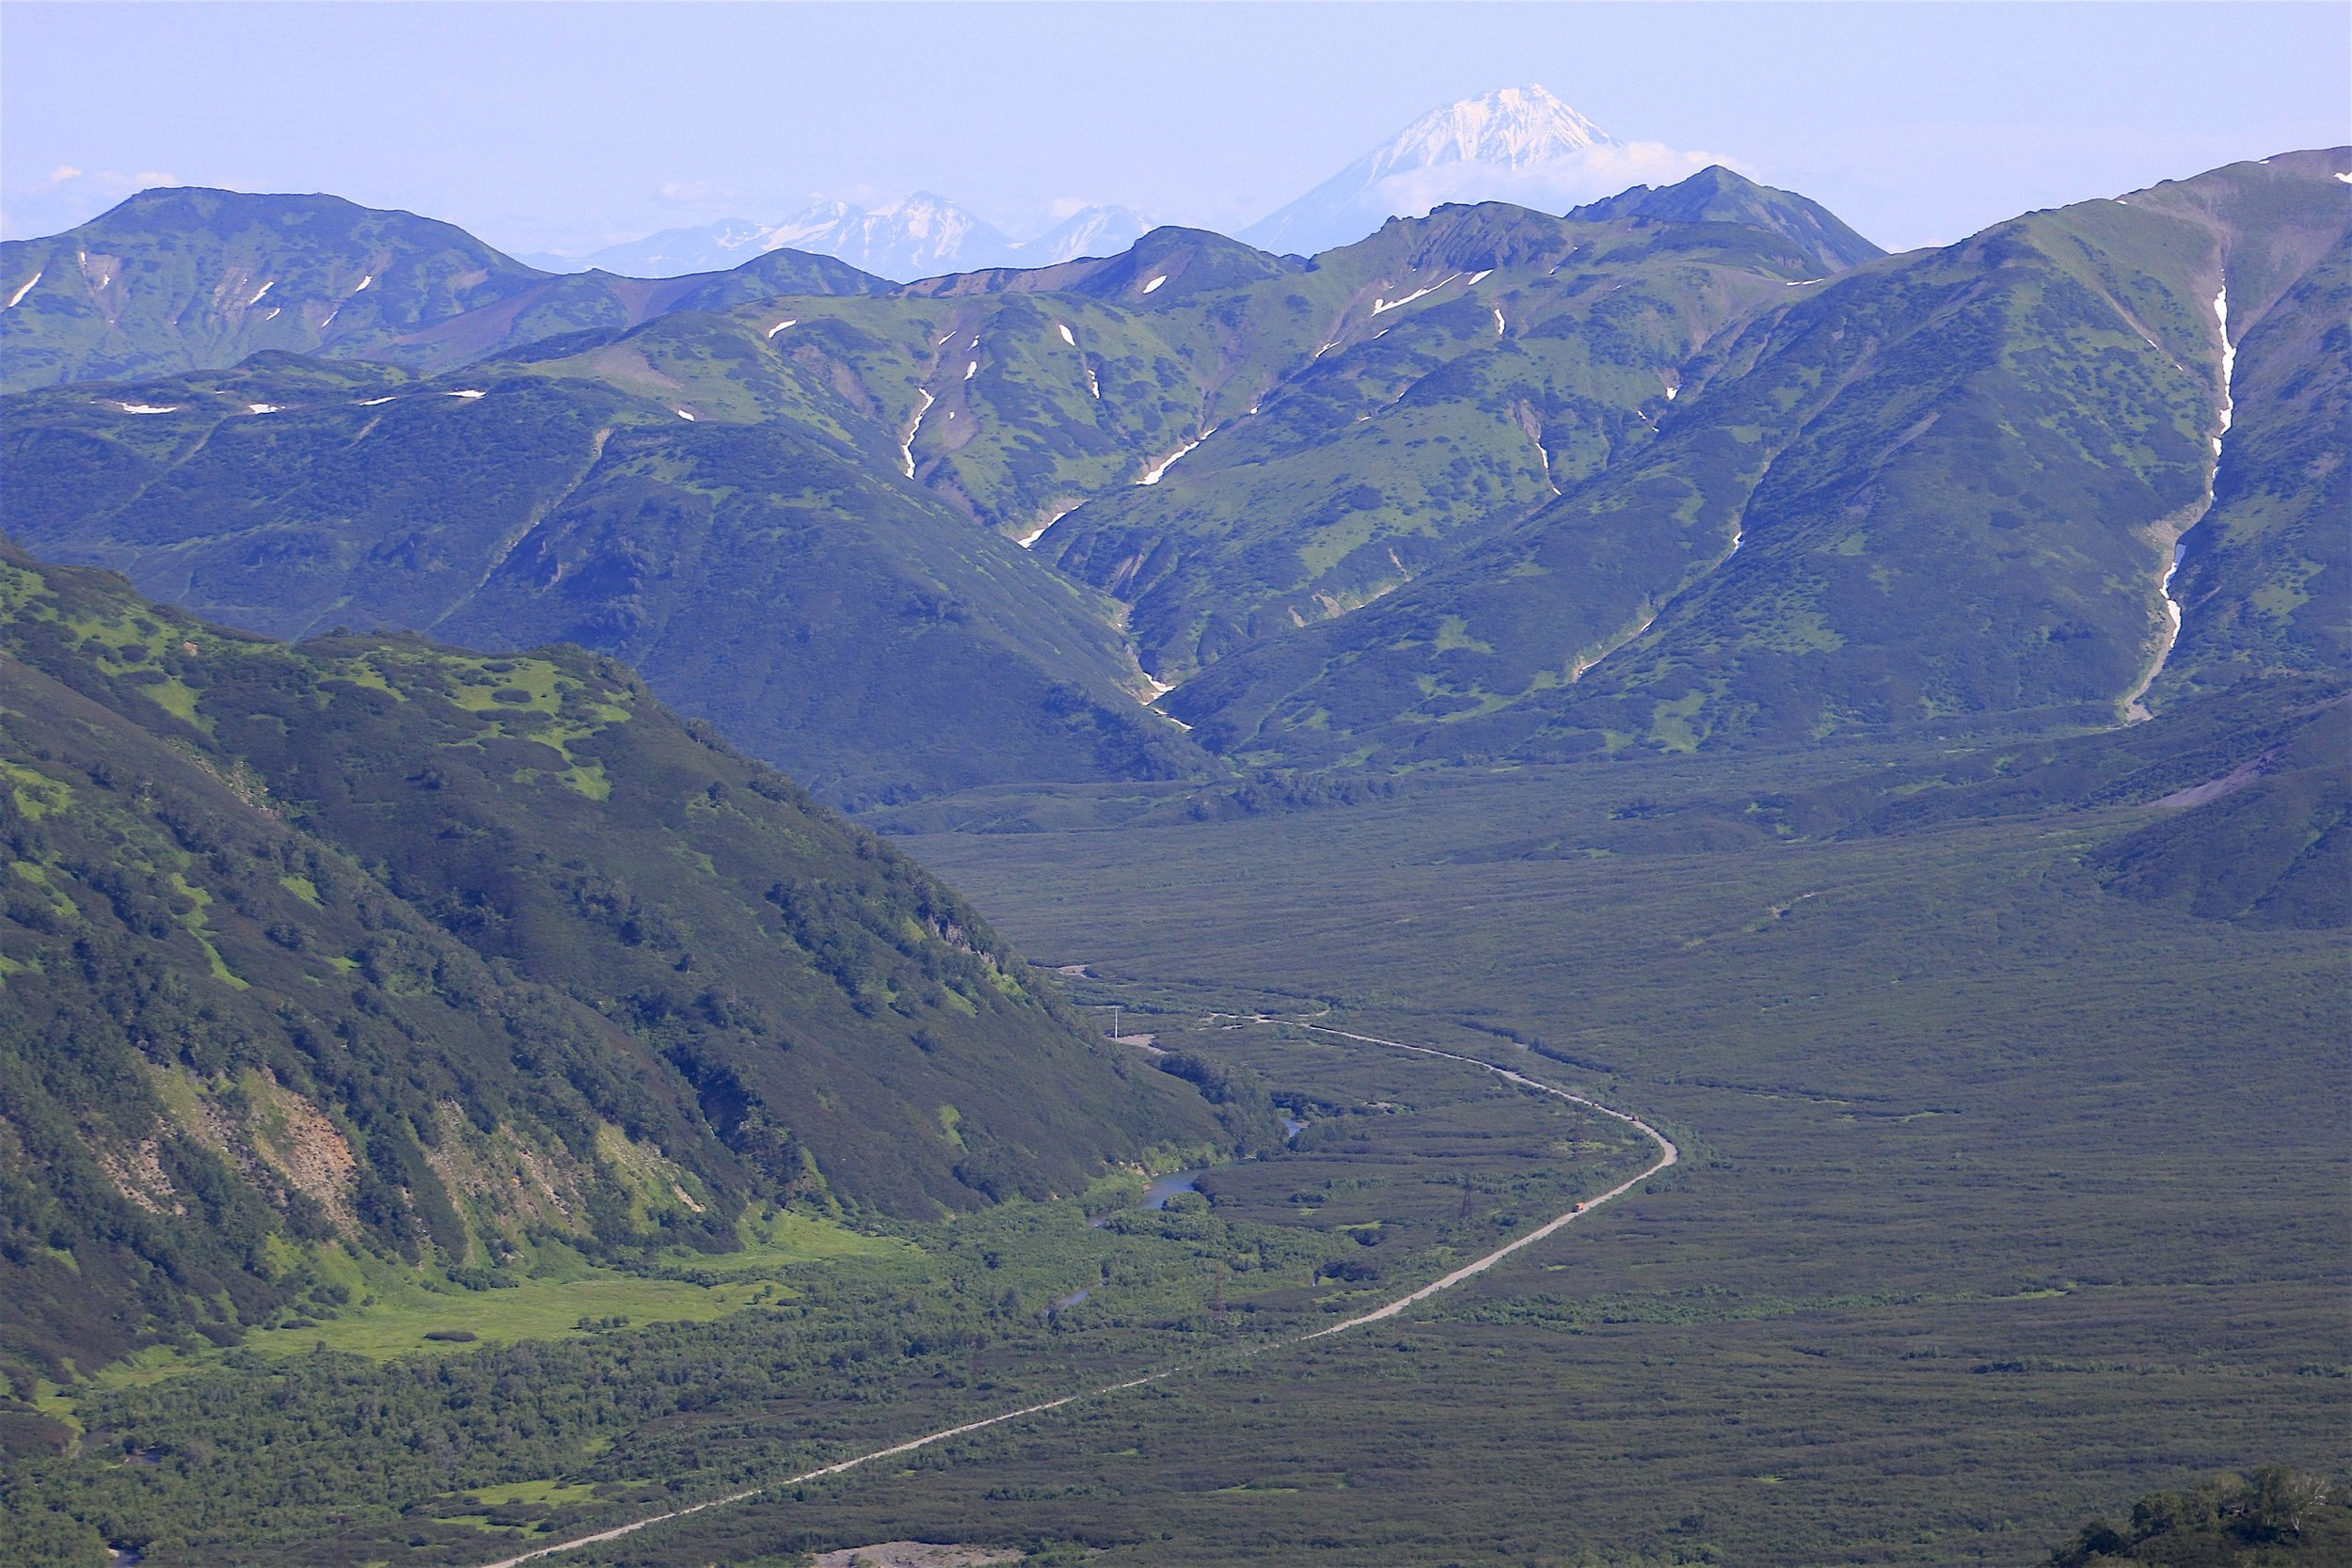 The road from PK to The Plateau of the Mutnovsky Volcano. The area of the Mutnovsky Volcano is located about 70km south from PK and is on the edge of the Mutnovsky National Park. The volcanic plateau is 600 to 900m high where cones of active volcanoes tower above the alpine tundra, free of snow only for three months of the year. There are three volcanoes in the area: the active Muntovsky and Gorely and the dormant Vilyuchinsky. The area receives over 15m of snow in winter! The road is not muddy but very rocky and dusty,